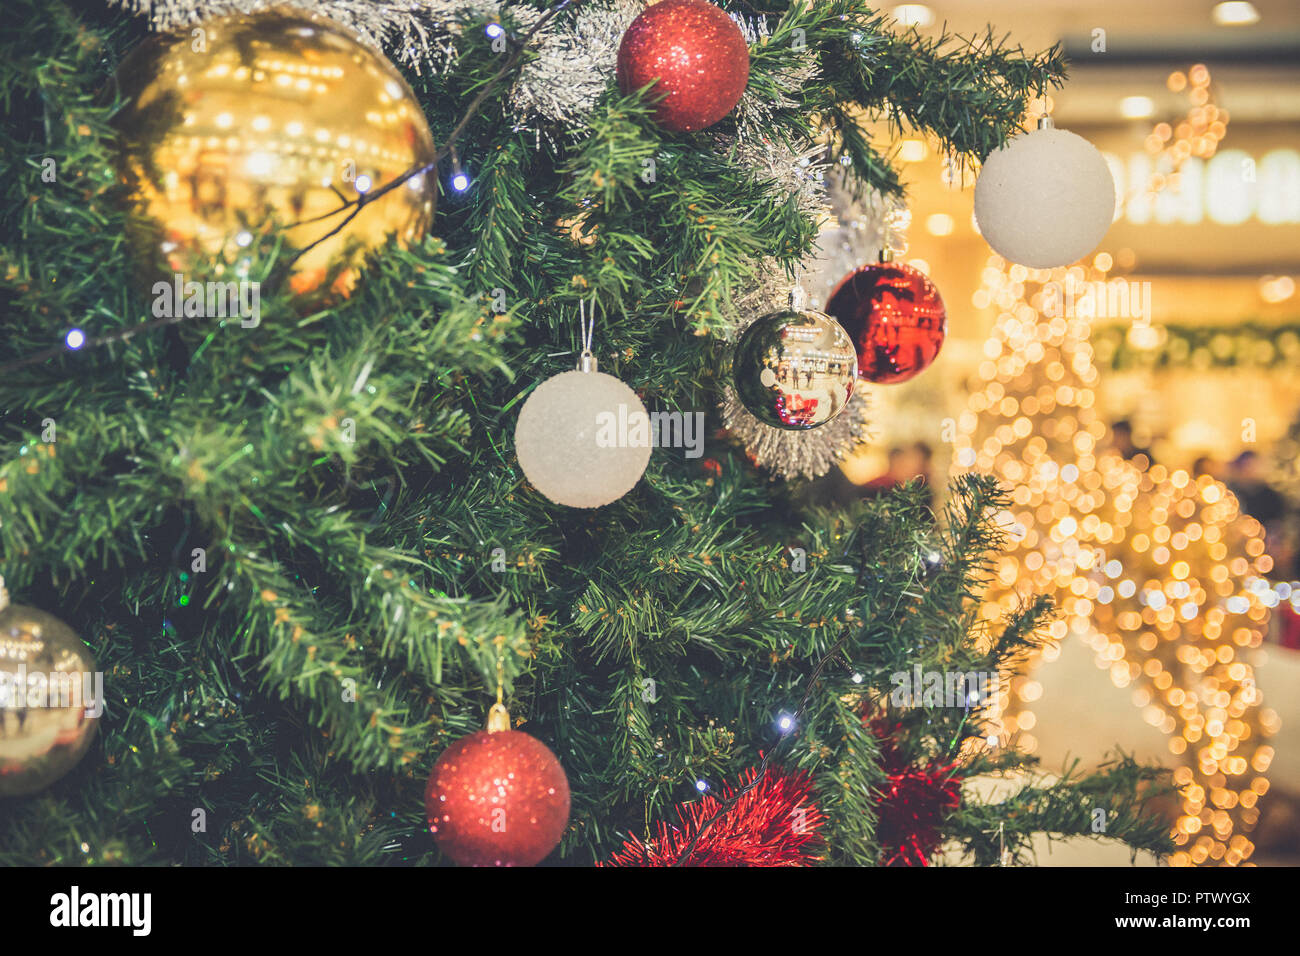 Decorated Christmas Tree With Baubles Tinsel And Lights Close Up Vintage Filter Effect Stock Photo Alamy